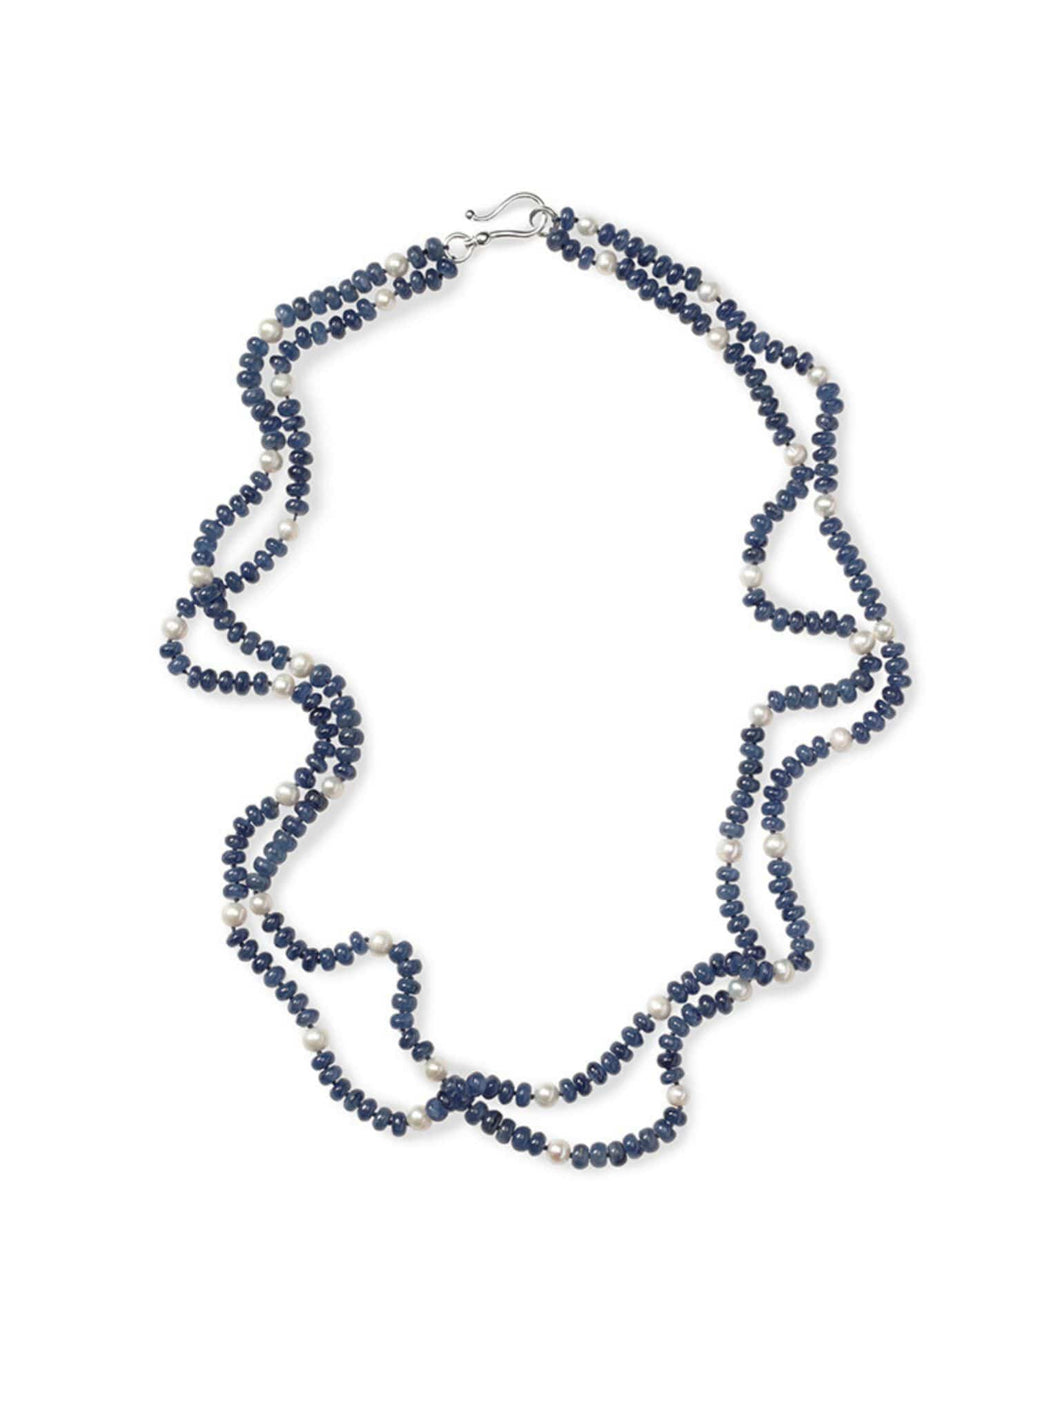 Two Strand Kyanite Necklace with Freshwater Pearls